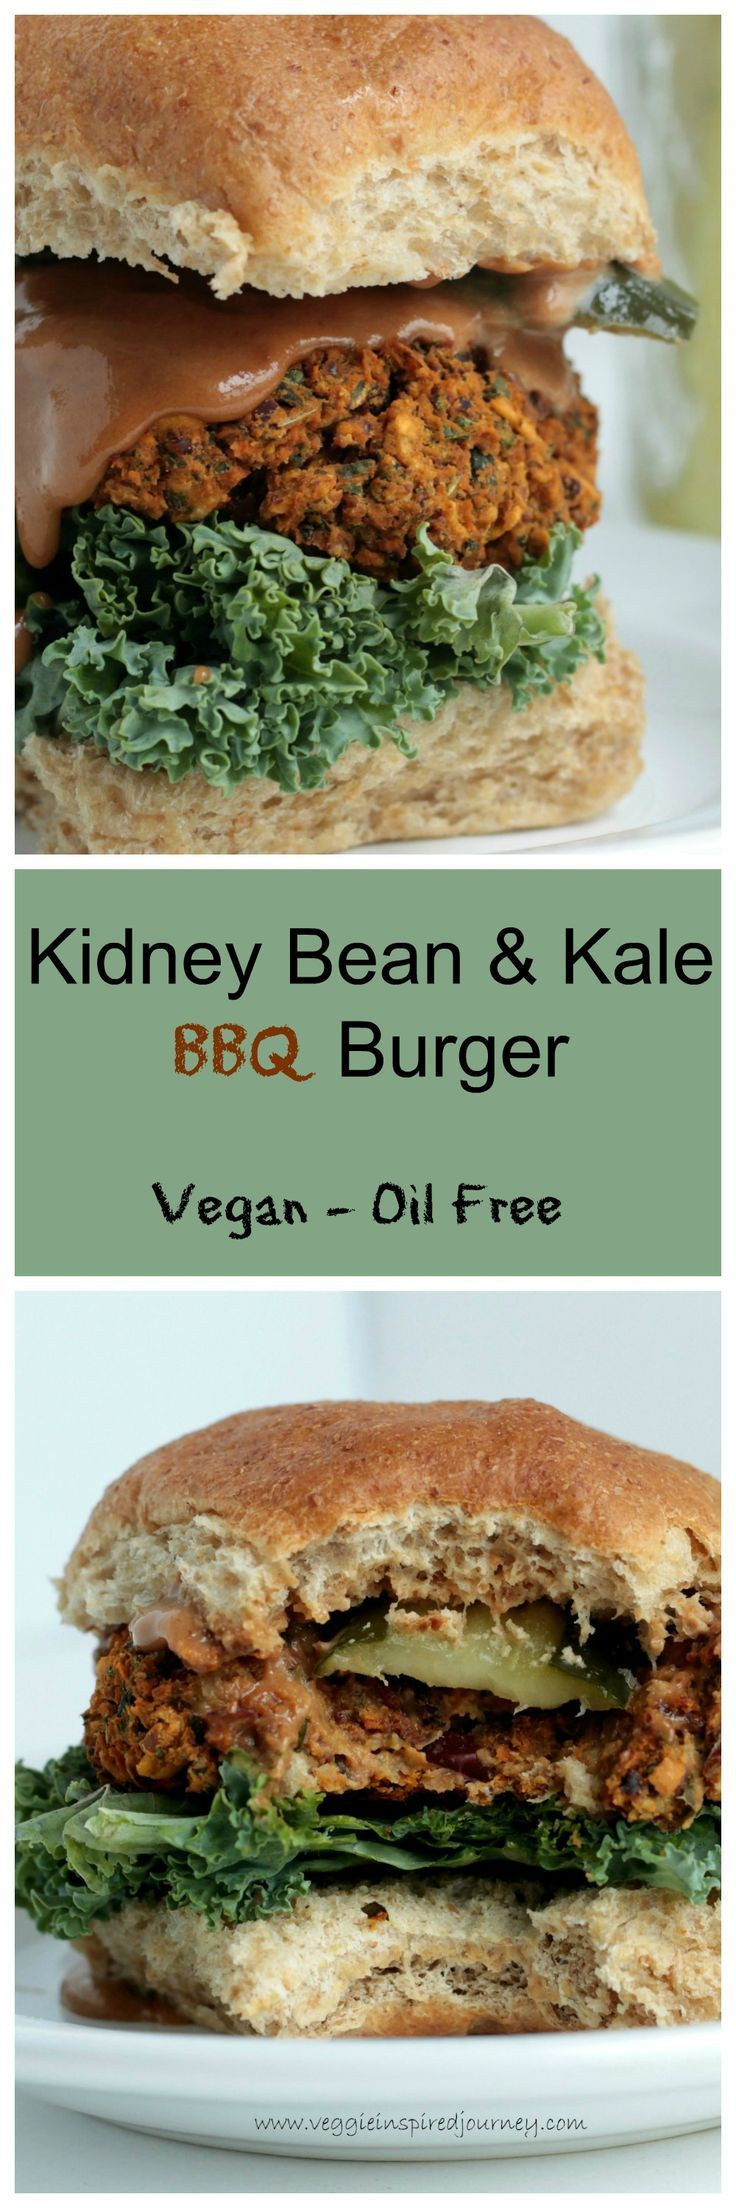 """Kidney Bean & Kale BBQ Burger - these vegan burgers hold up perfectly! Crispy on the outside, """"meaty"""" on the inside and so full of BBQ flavor goodness!"""